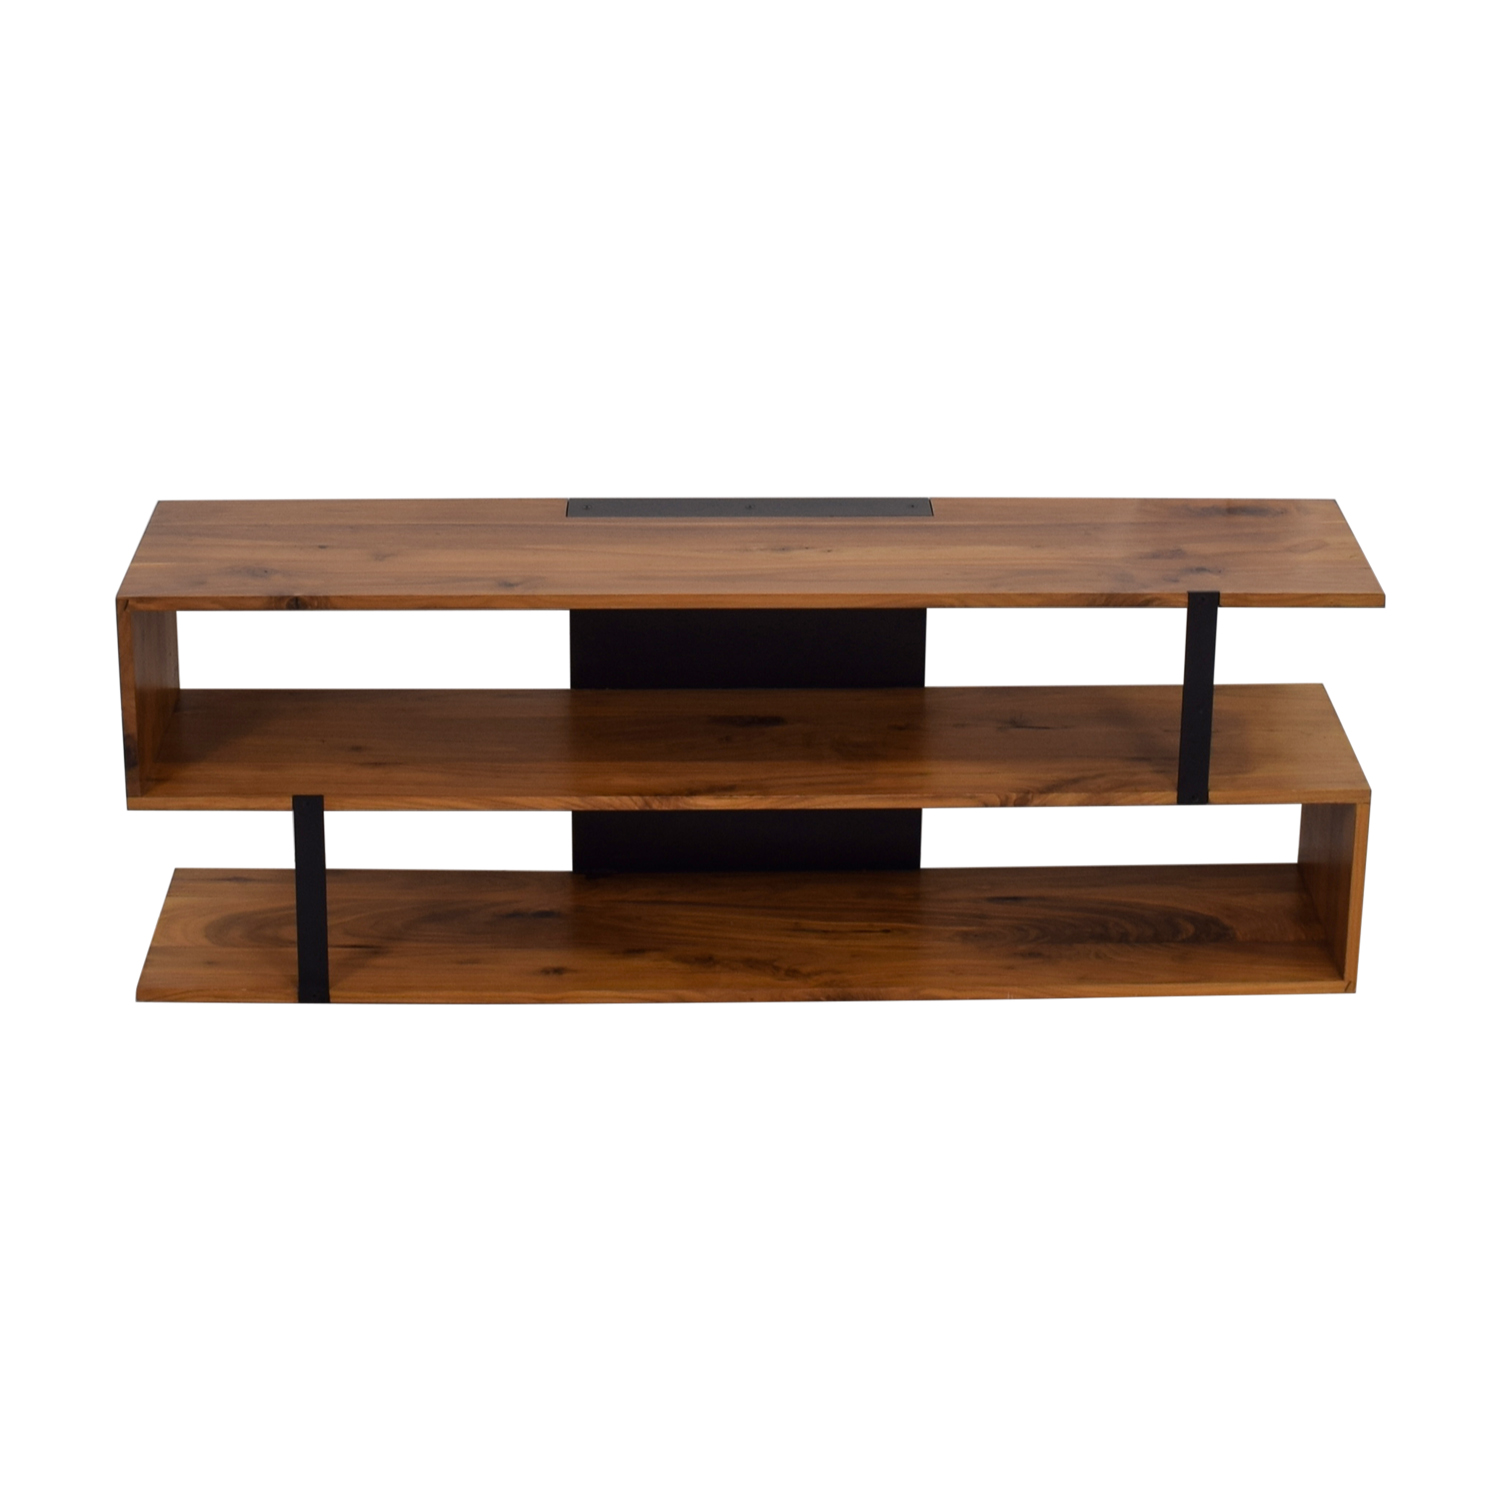 shop Crate & Barrel Crate & Barrel Austin Media Console online